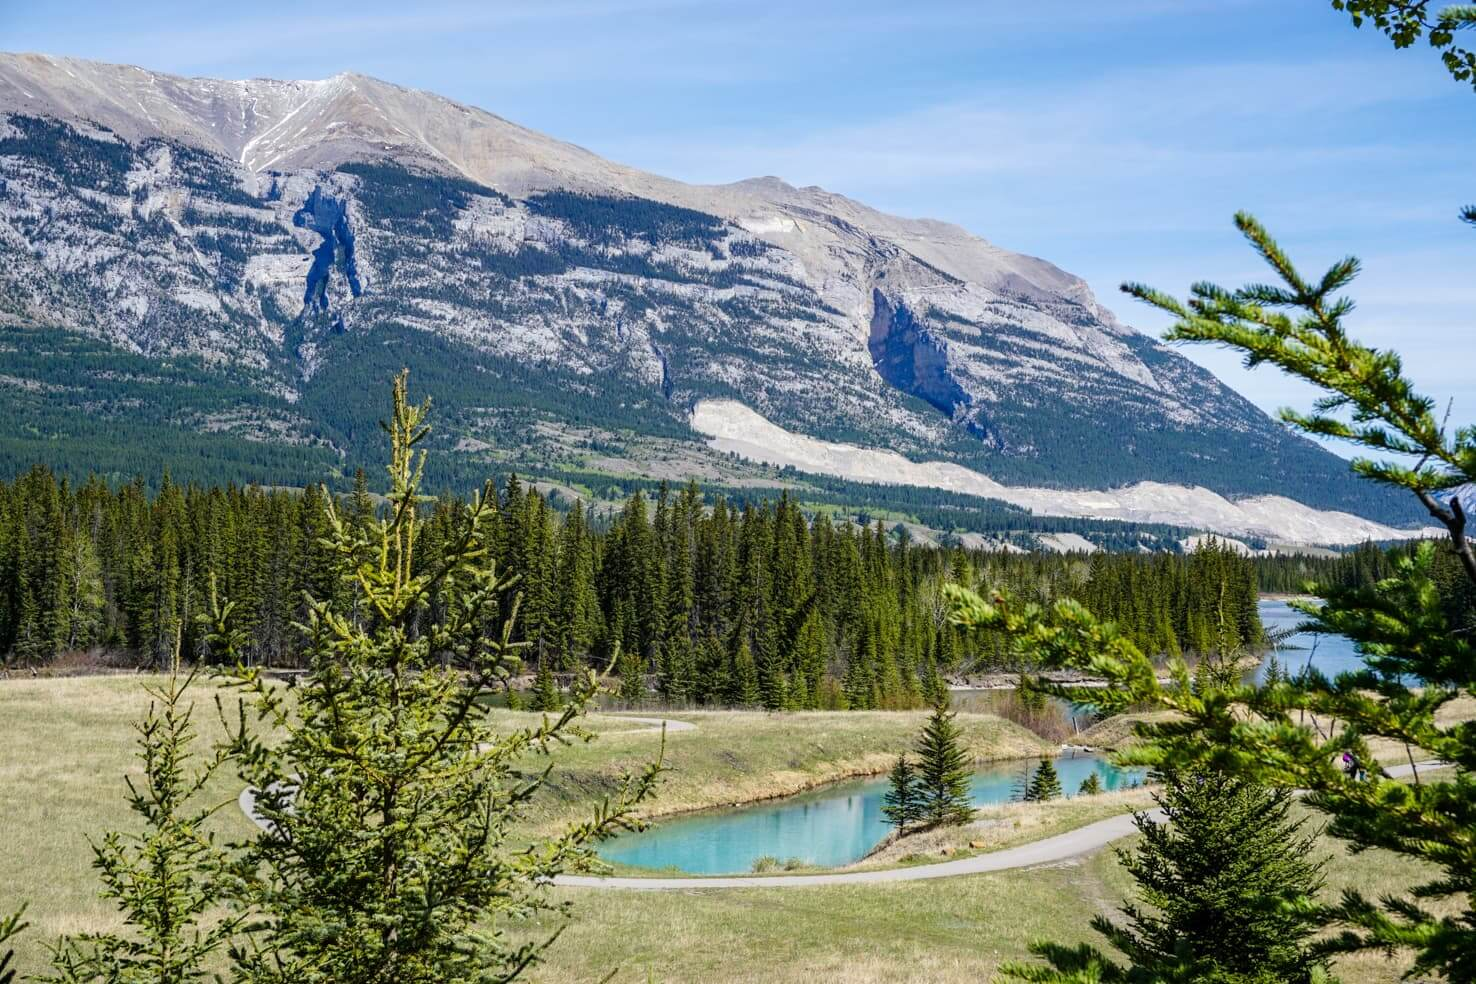 100 best things to do in Banff National Park, Canada - Bike around Canmore